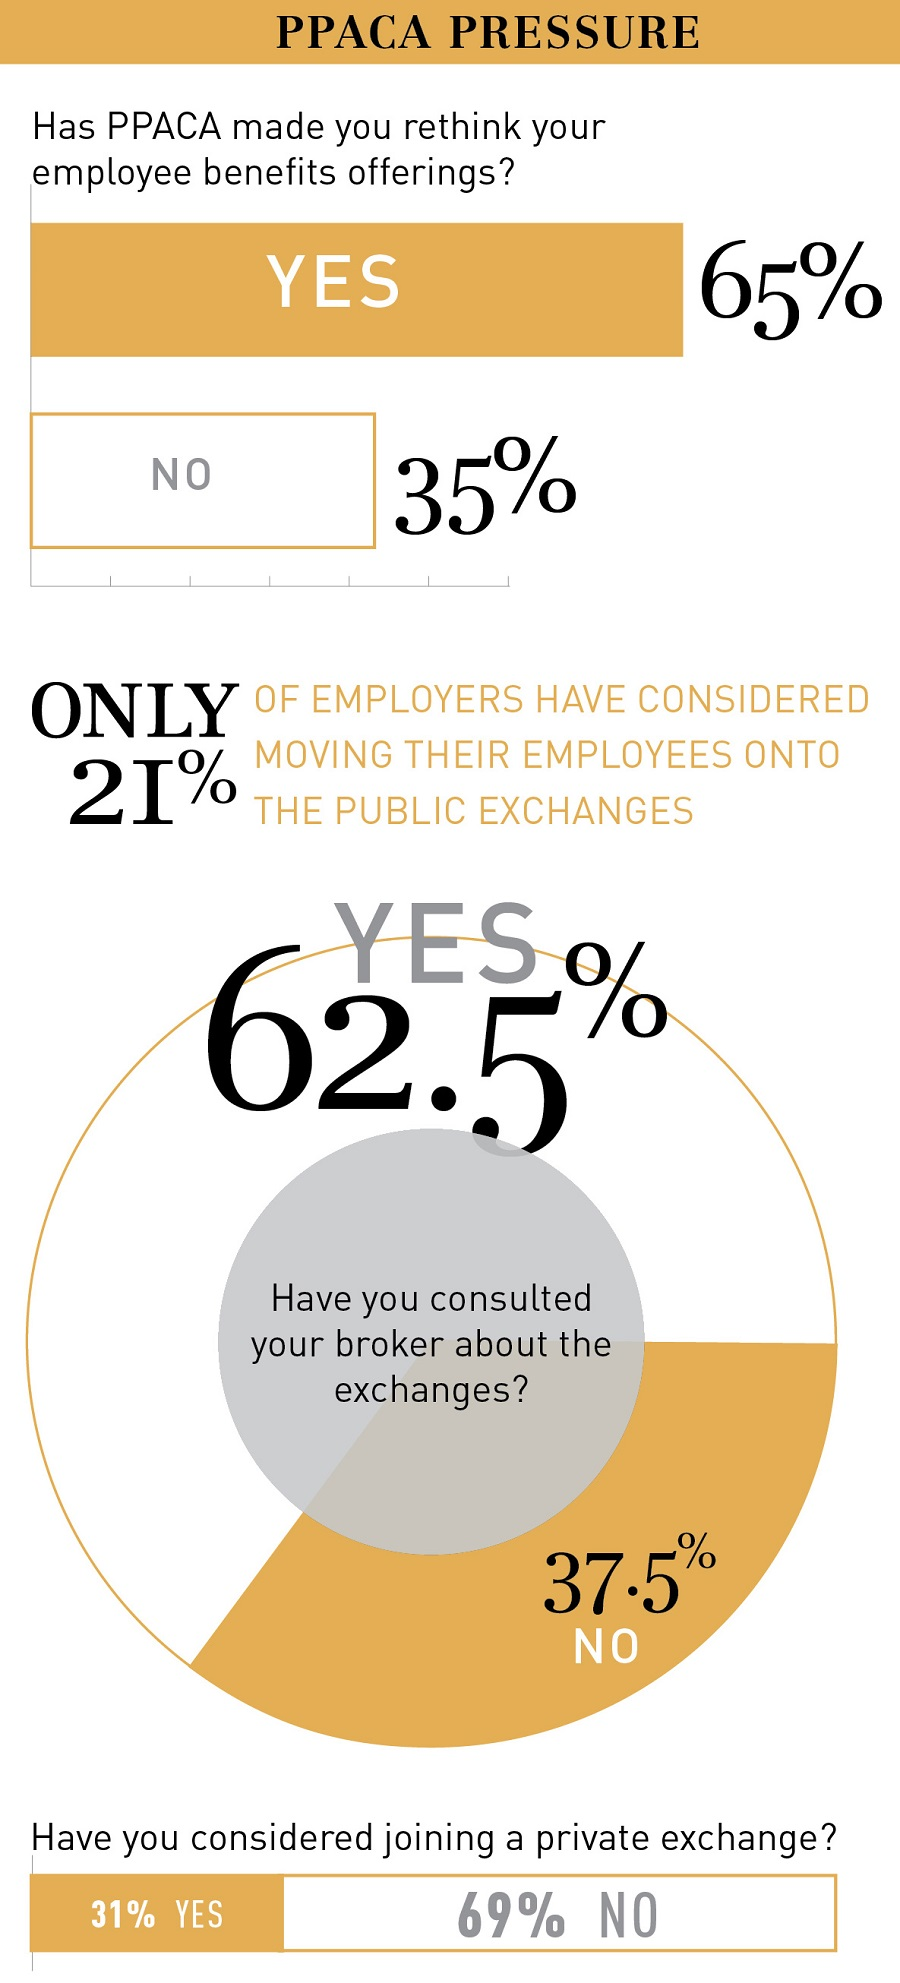 How PPACA is affecting employee benefits, from Benefits Selling Magazine 2015 Benefits Survey